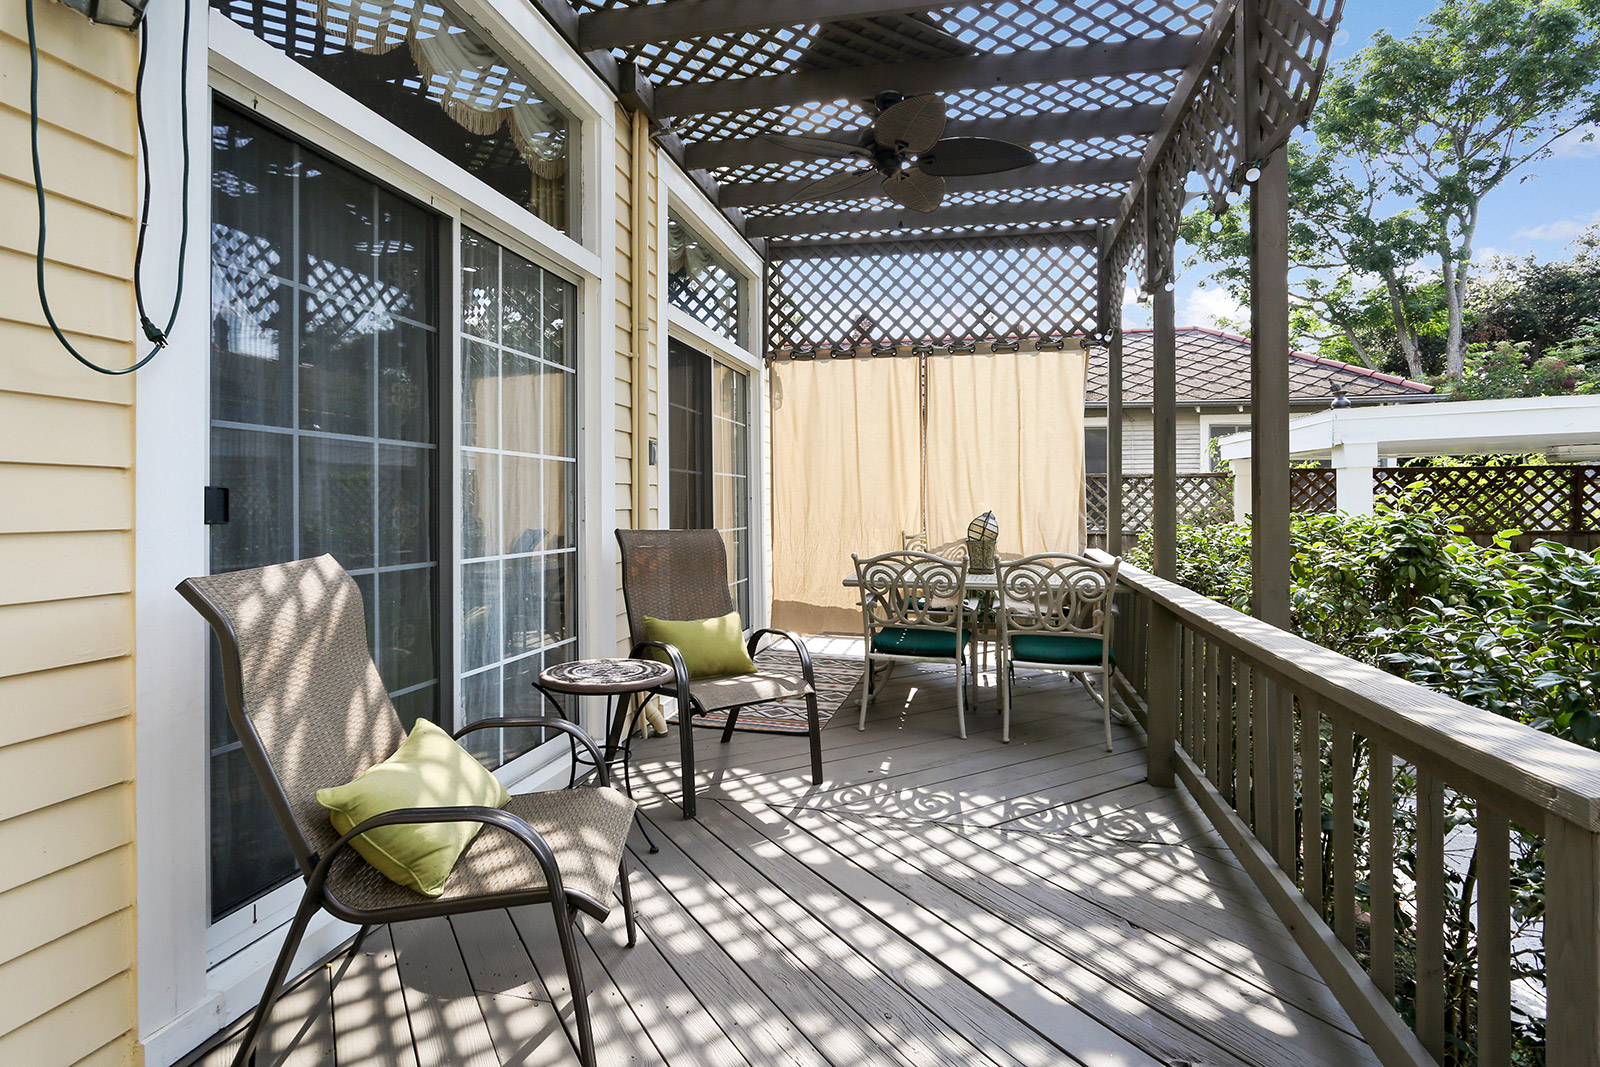 100 Detached Covered Patio Spicer Auction The Kiowa News